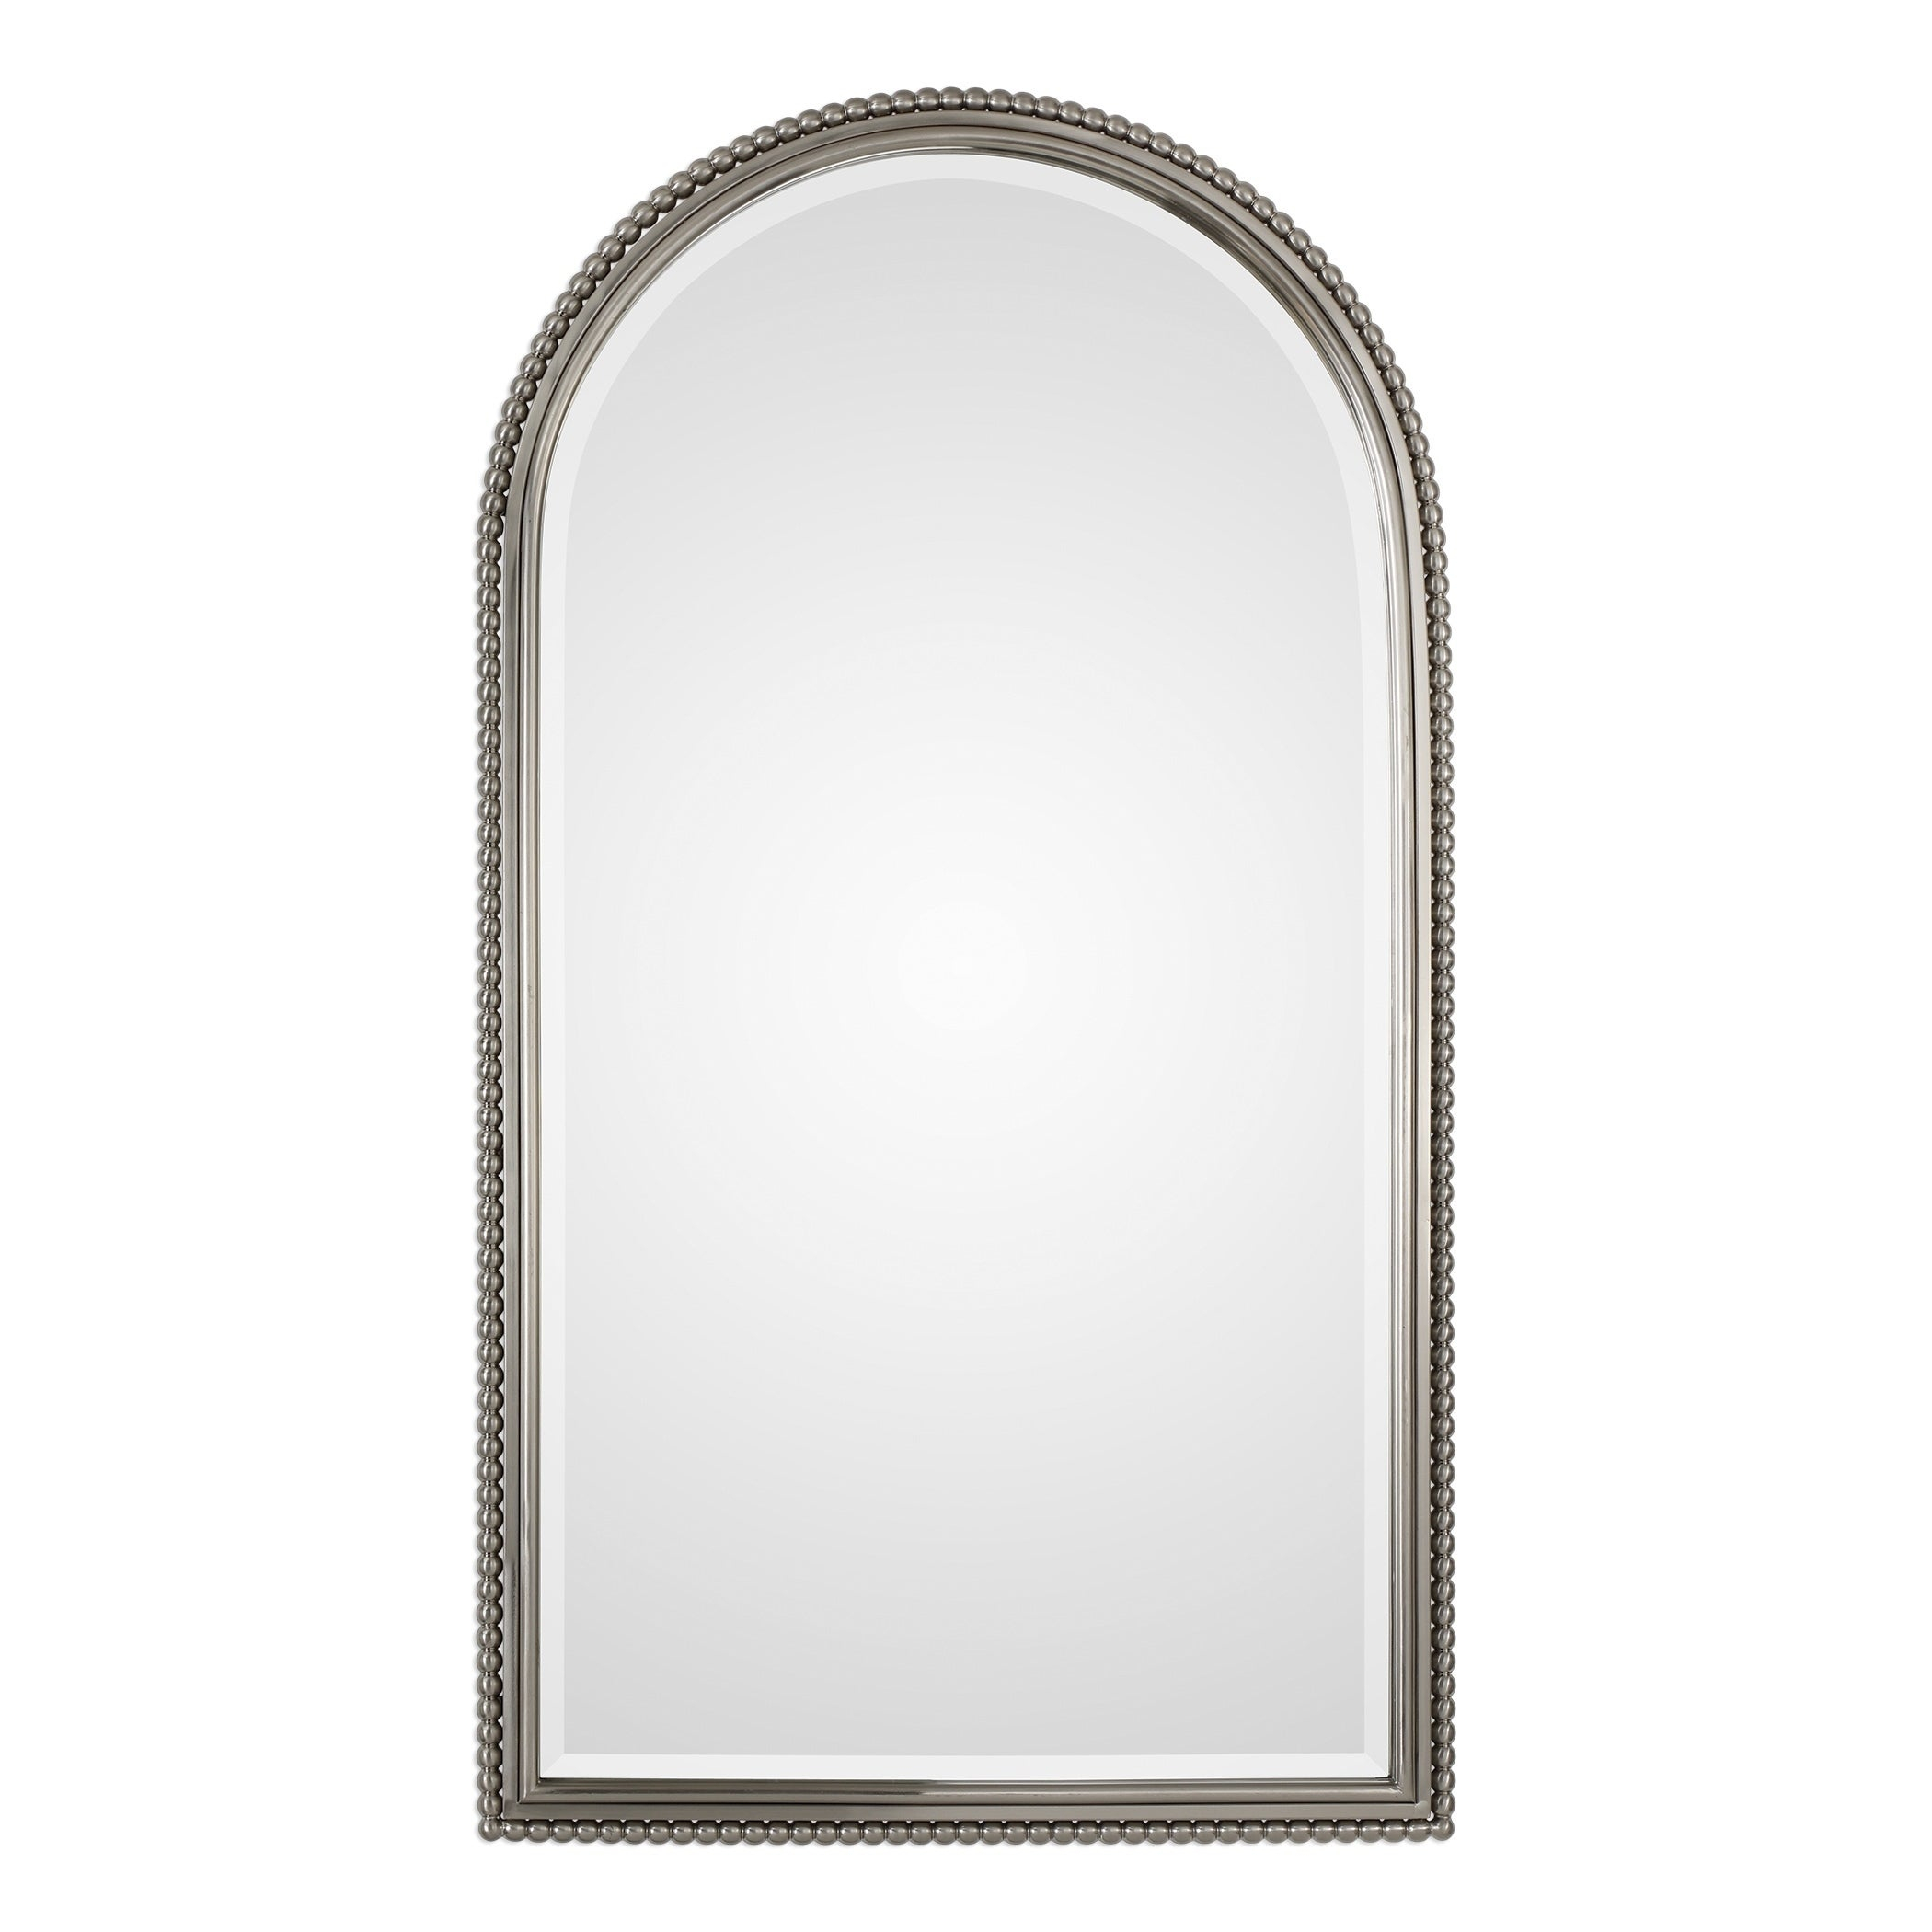 Arch Crowned Top, Wall Mirror | Shop Online At Overstock With Regard To Ekaterina Arch/crowned Top Wall Mirrors (Image 7 of 20)